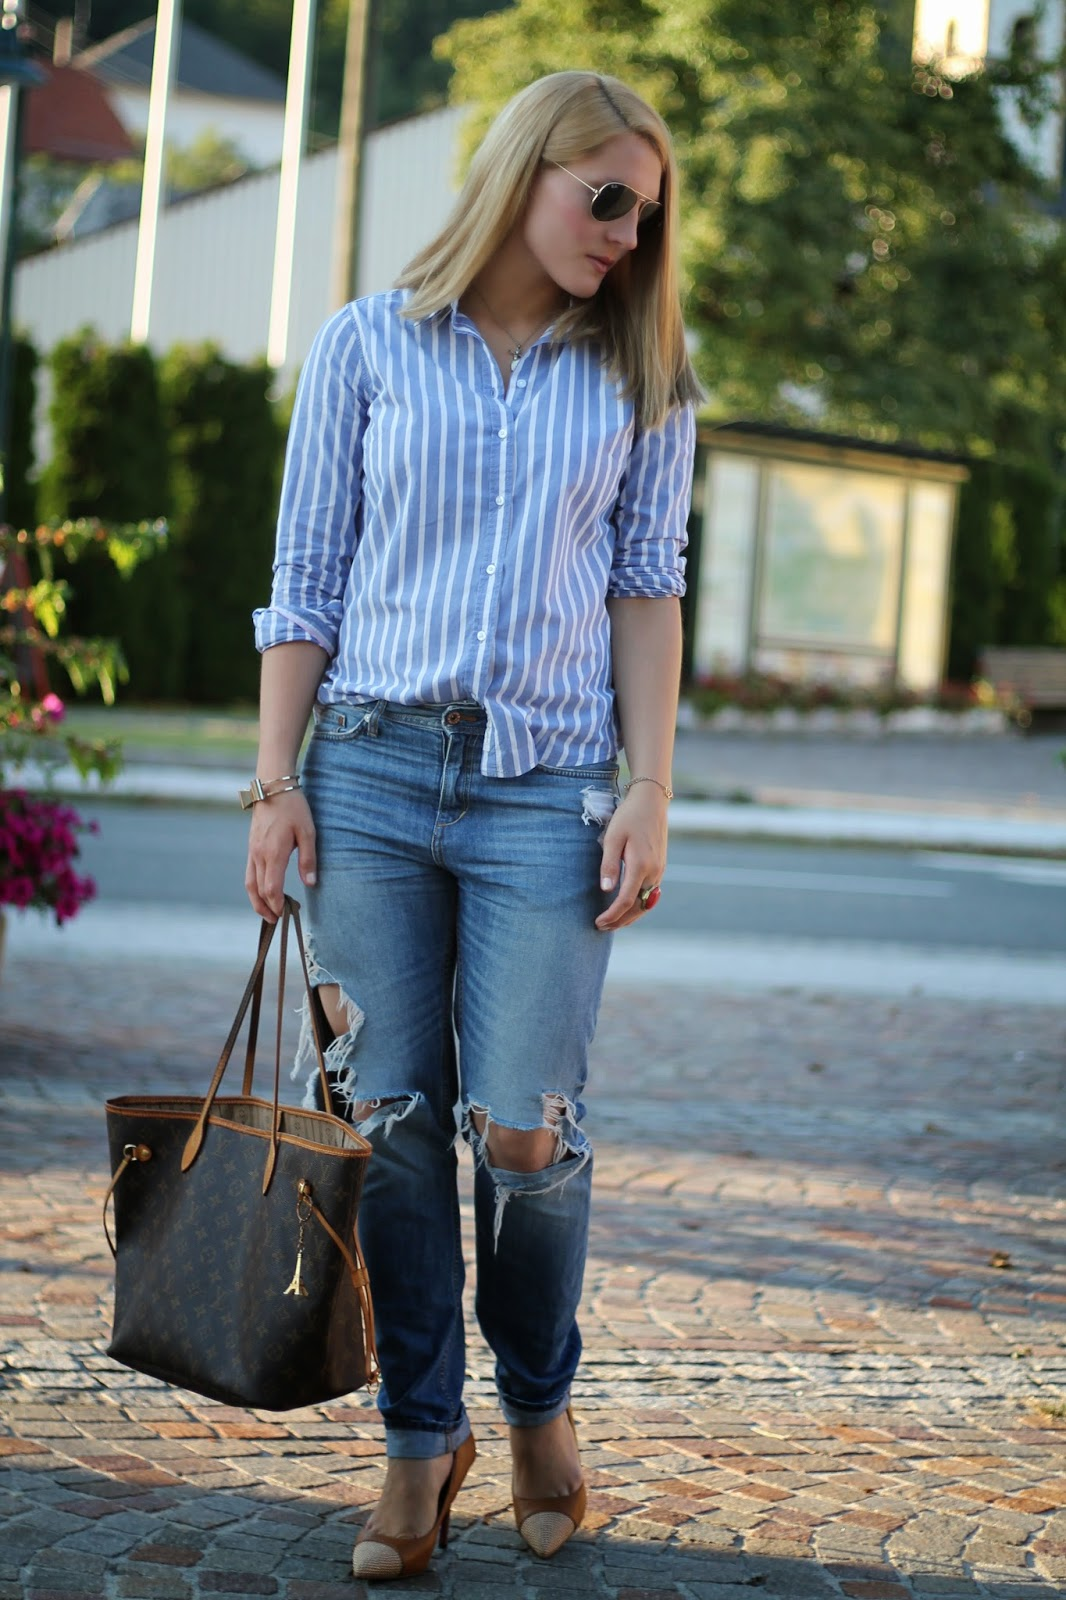 Fashionblogger Austria / Österreich / Deutsch / German / Kärnten / Carinthia / Klagenfurt / Köttmannsdorf / Spring Look / Classy / Edgy / Summer / Summer Style 2014 / Summer Look / Fashionista Look /   / Summer Look / Boyfriend Jeans / Louis Vuitton Neverfull Look / Brown Heels / Ray Ban Aviator / White Blue Blouse / Evening Look/